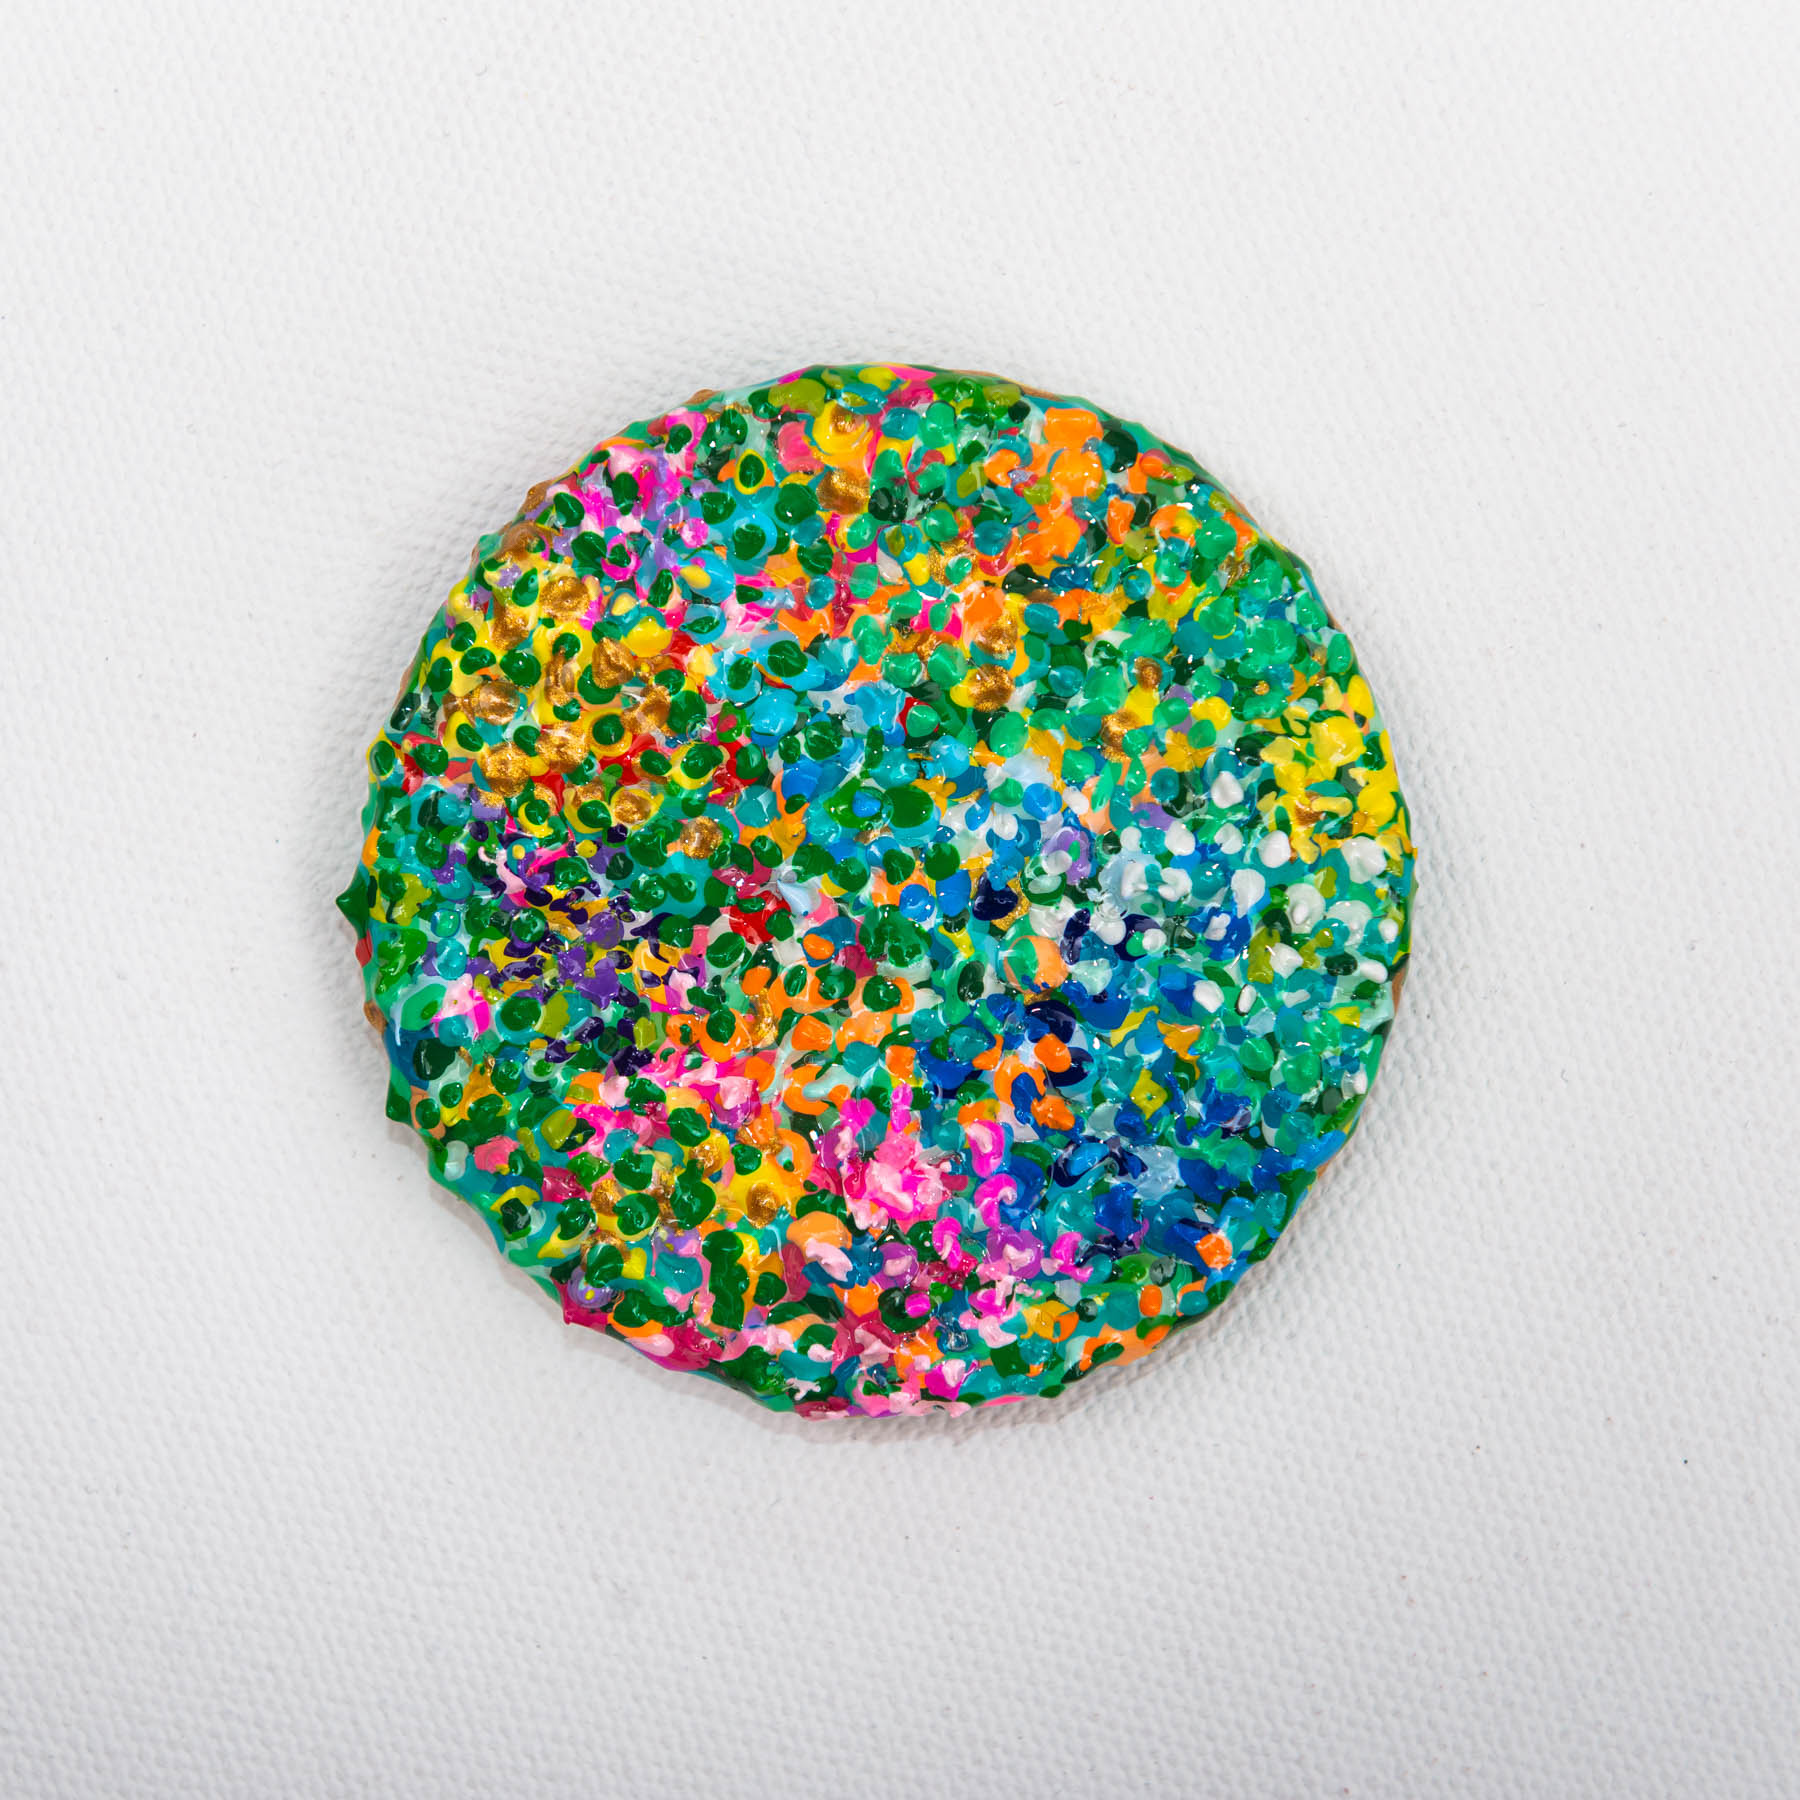 Bauerngarten, Gustav Klimt, Impressionism, Impressionist, Naina.co, Naina Redhu, KhaosPhilos, surreal, colorful, flower garden, 2.5 inch brooch, wearable art brooch, wooden brooch, wear a painting, wearapainting, wearableart, wear art, art i can wear, art you can wear, acrylic painting, hand painted, indian artist, indian female artist, contemporary art, modern artist, indian contemporary art, indian contemporary artist, contemporary art india, impressionism in india, flowers, garden, 1906,